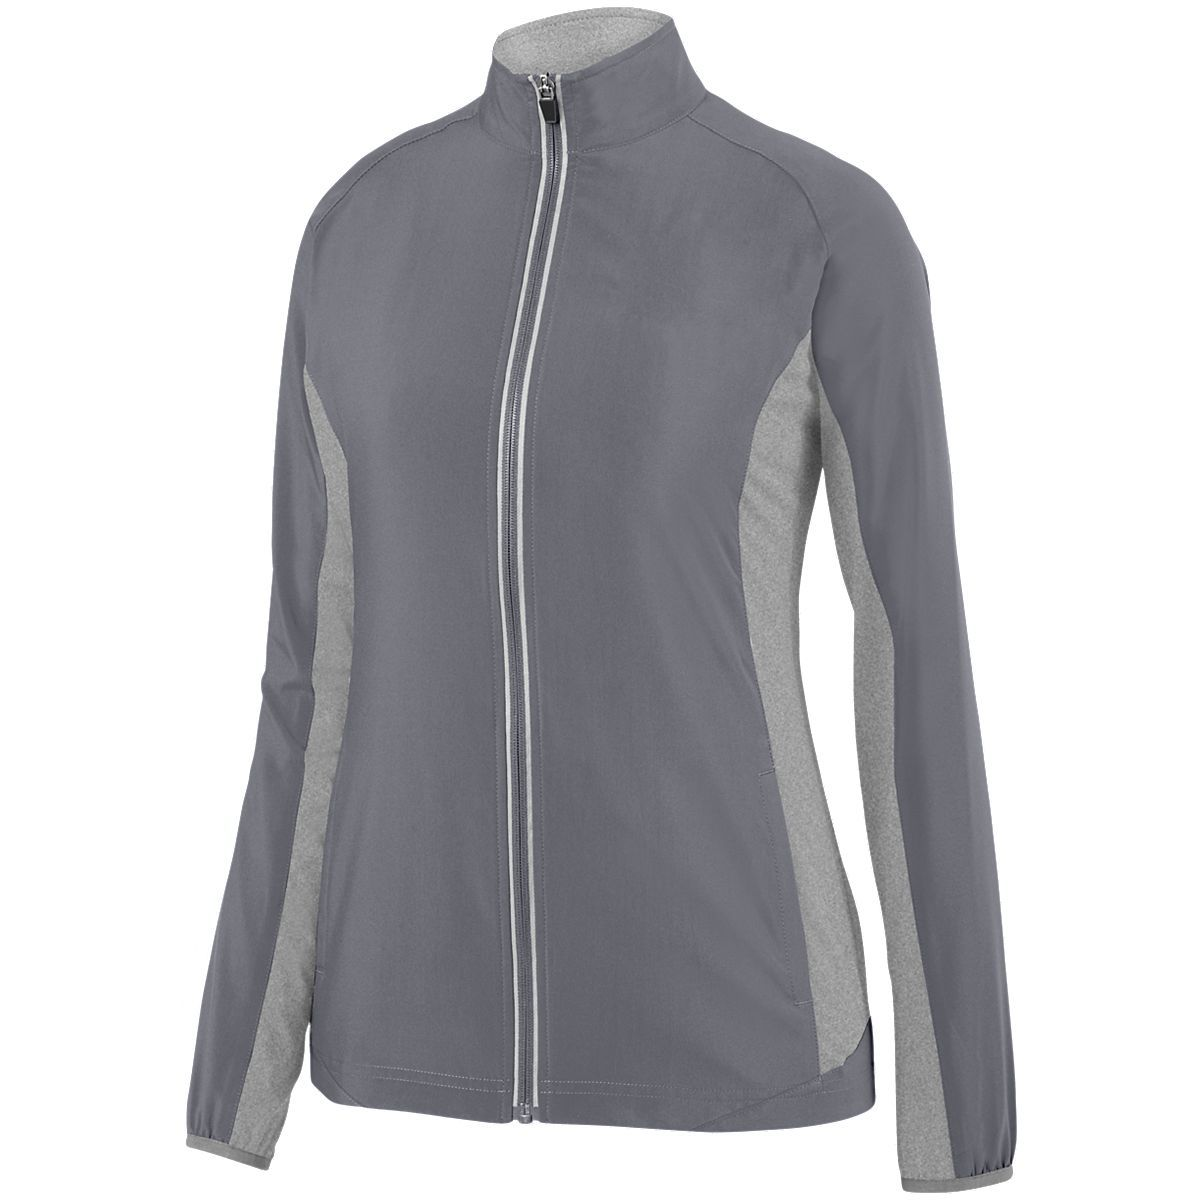 Ladies Preeminent Jacket - GRAPHITE/GRAPHITE HEATHER